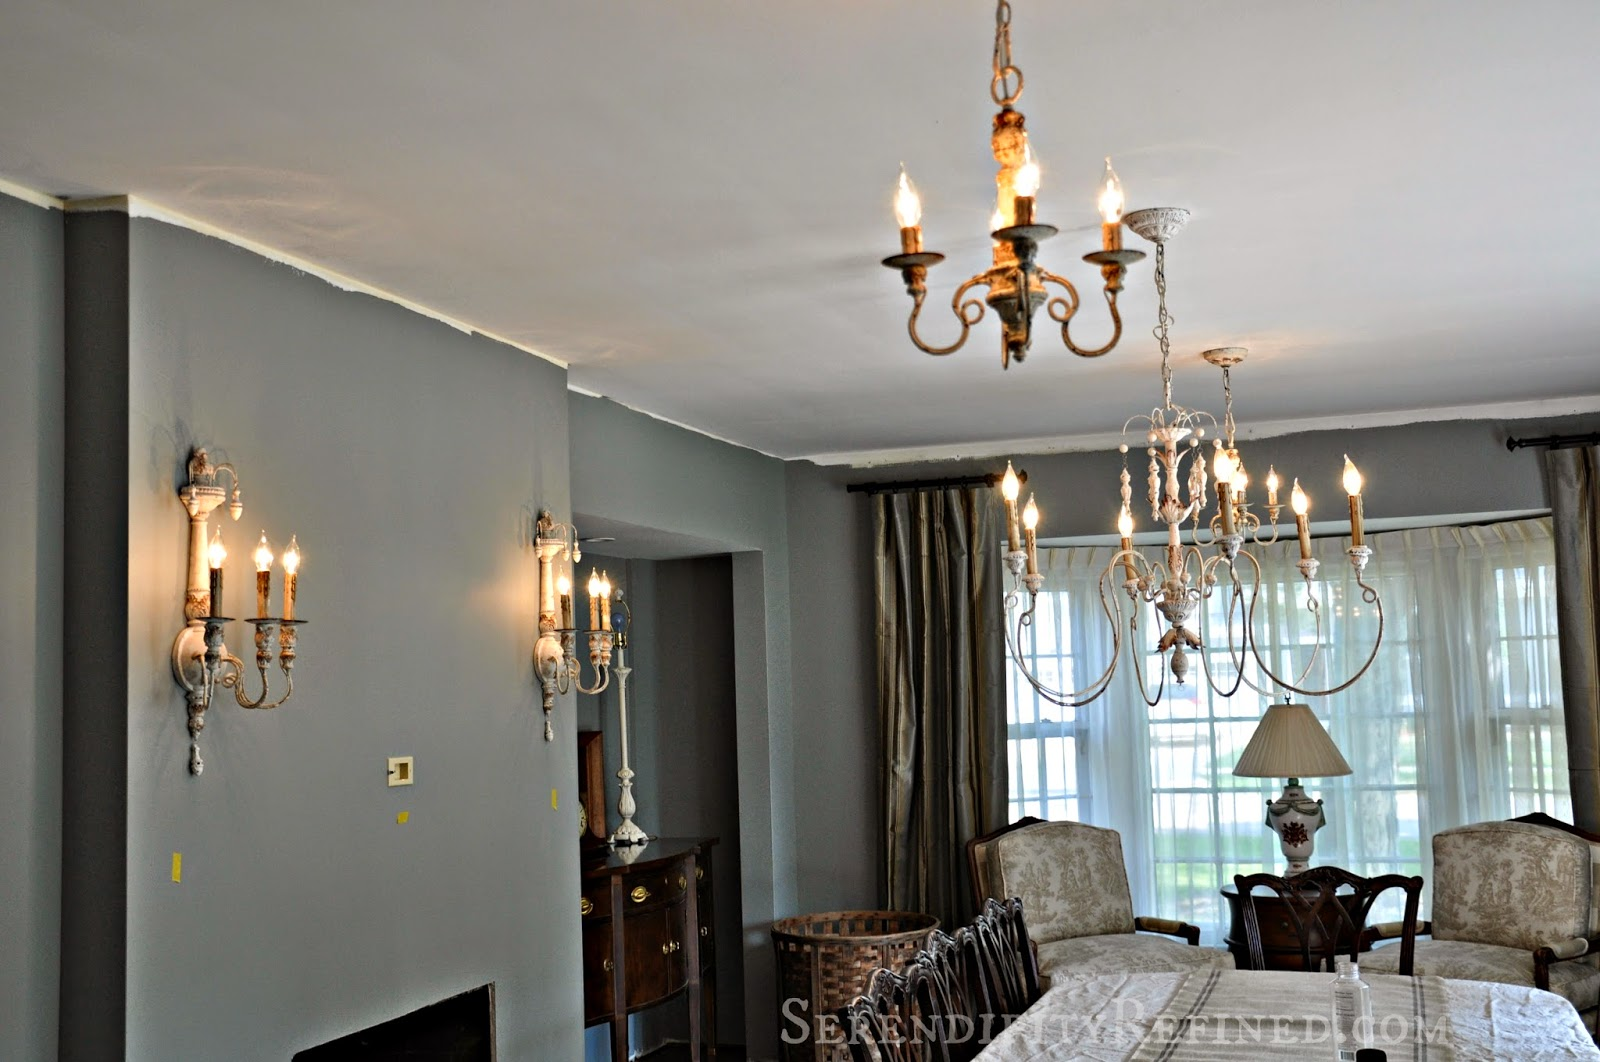 Serendipity Refined Blog: French Country Light Fixtures For The Farmhouse Dining  Room